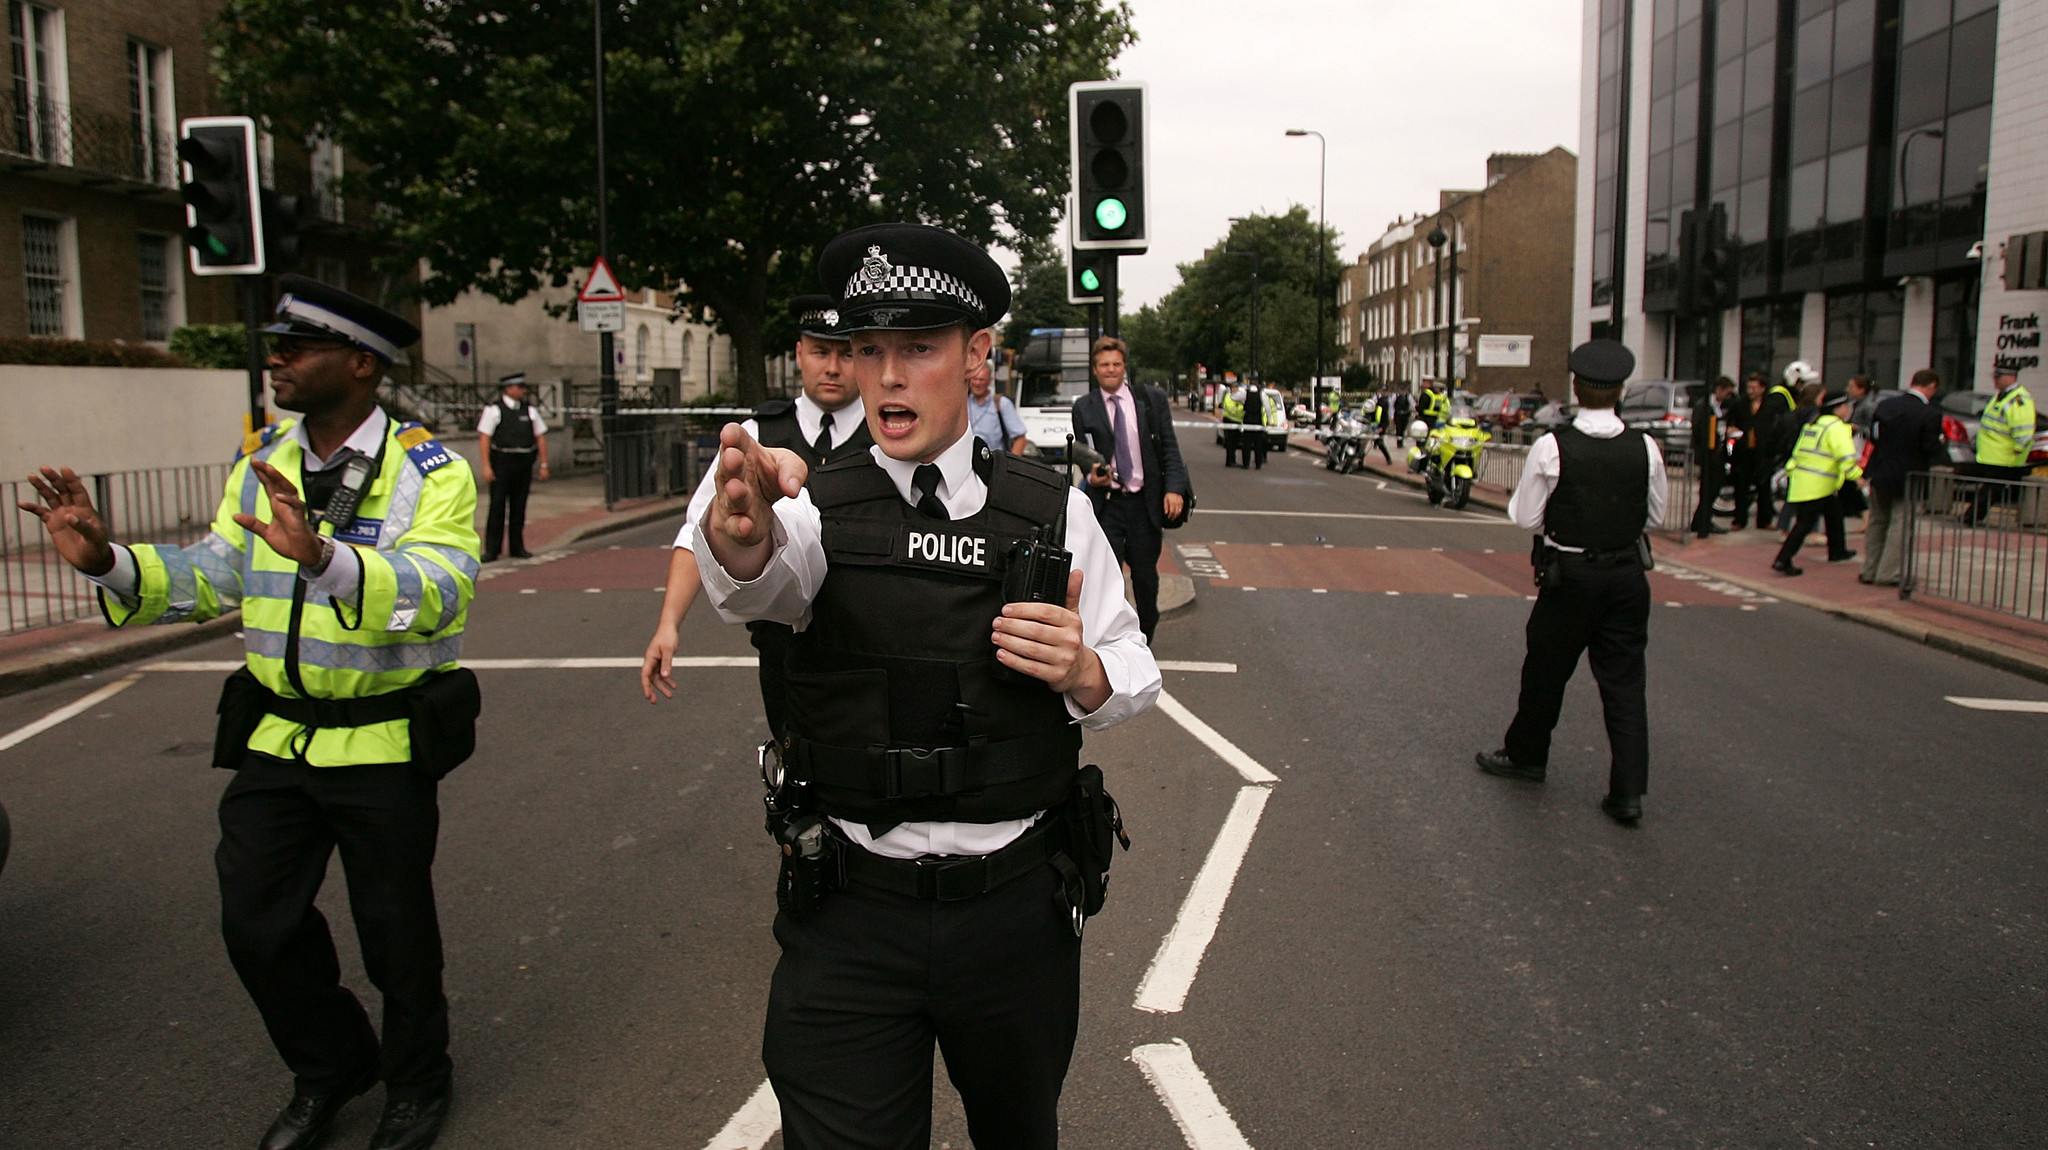 Police and Emergency services are seen outside the Oval Underground Station, one of three stations targeted with bombs on July 21, 2005, in London.